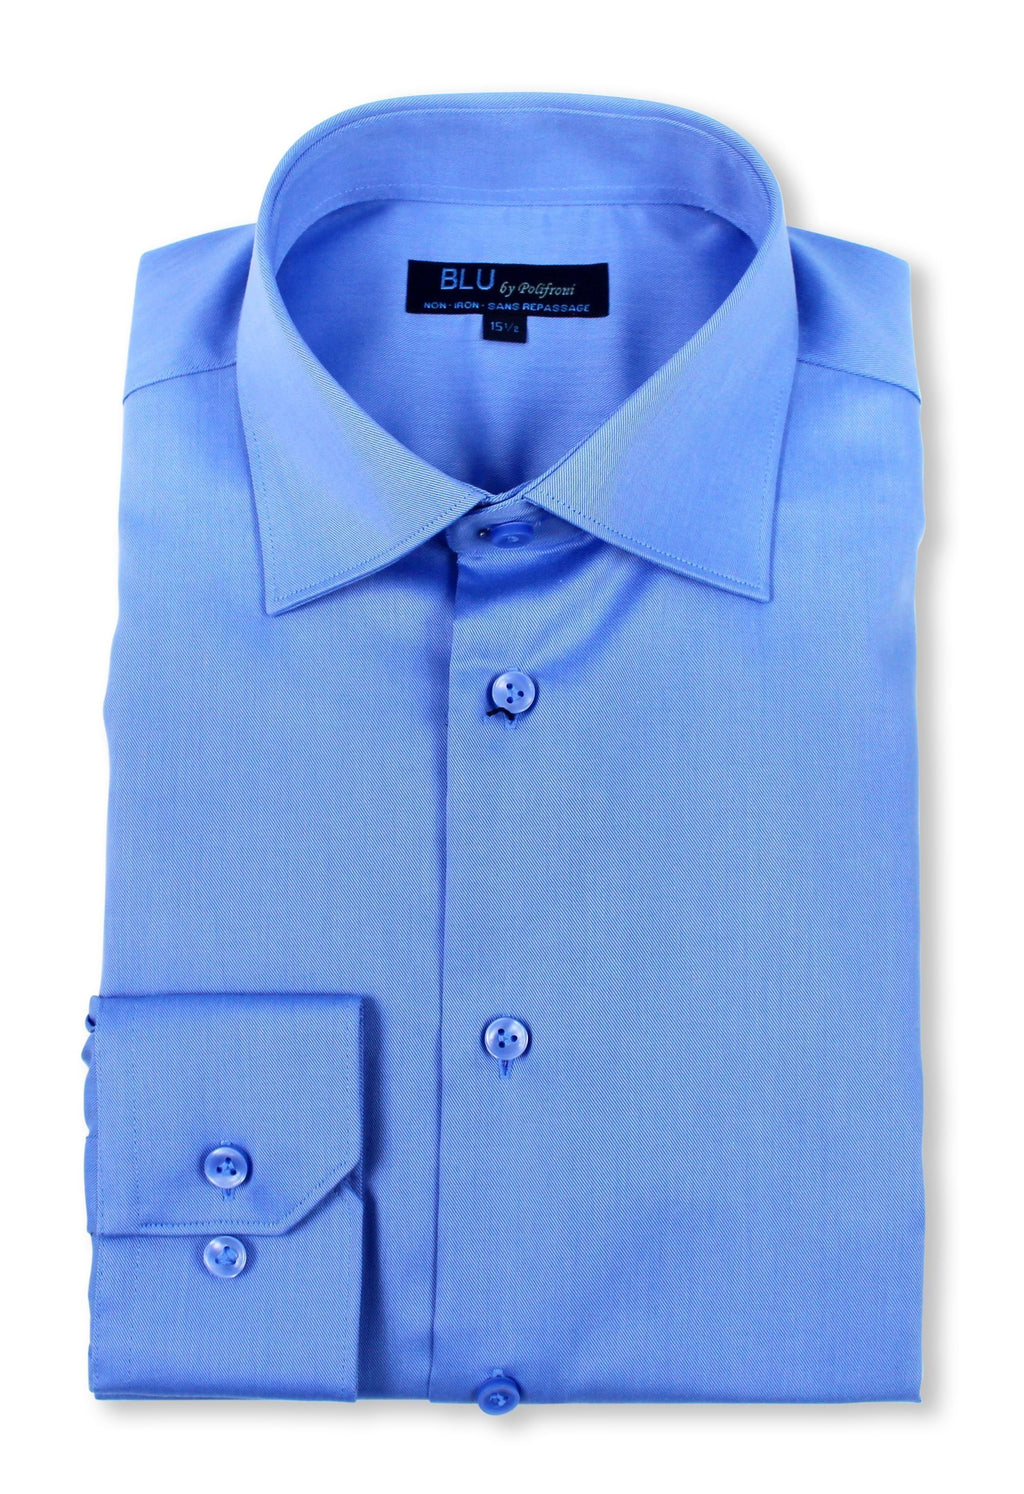 Blu by Polifroni Poplin Slim Fit Non-Iron Dress Shirt